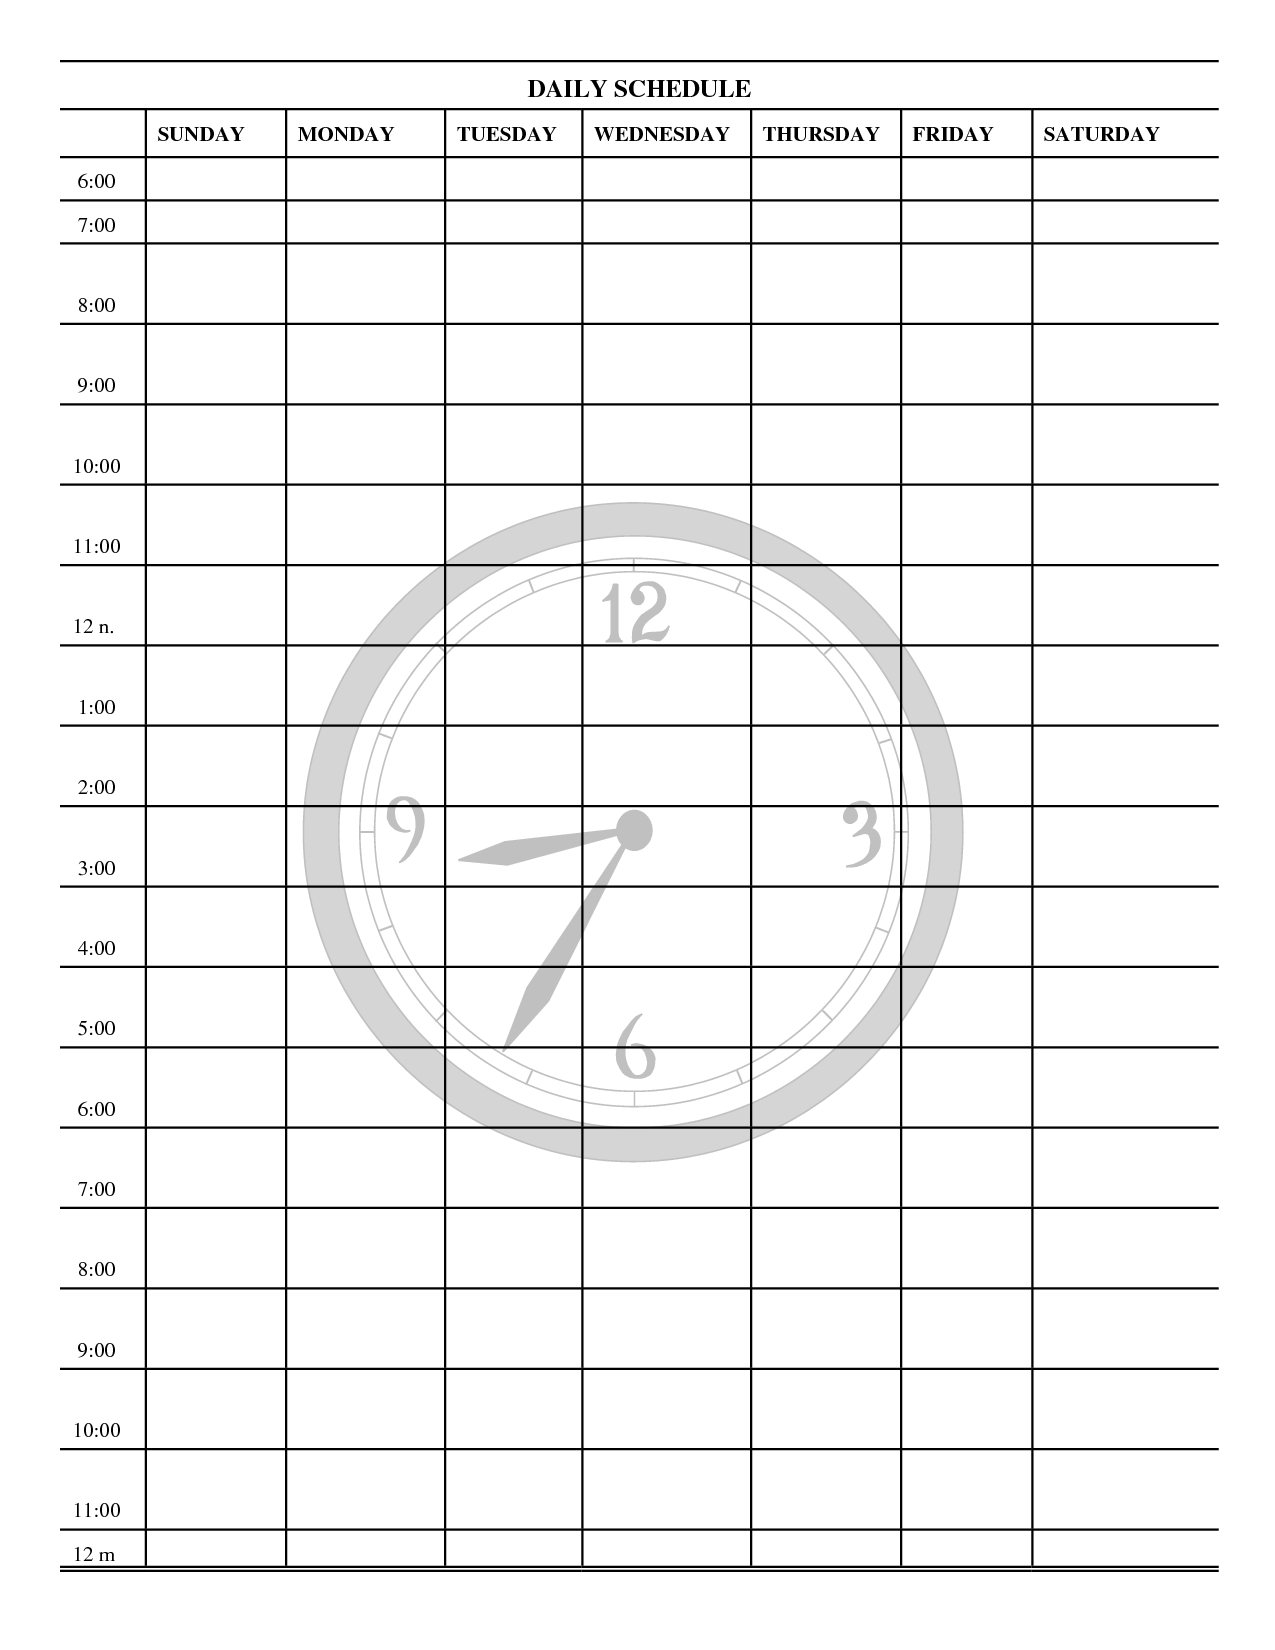 best photos of downloadable daily schedule template free printable Free Day To Day Calendar erdferdf